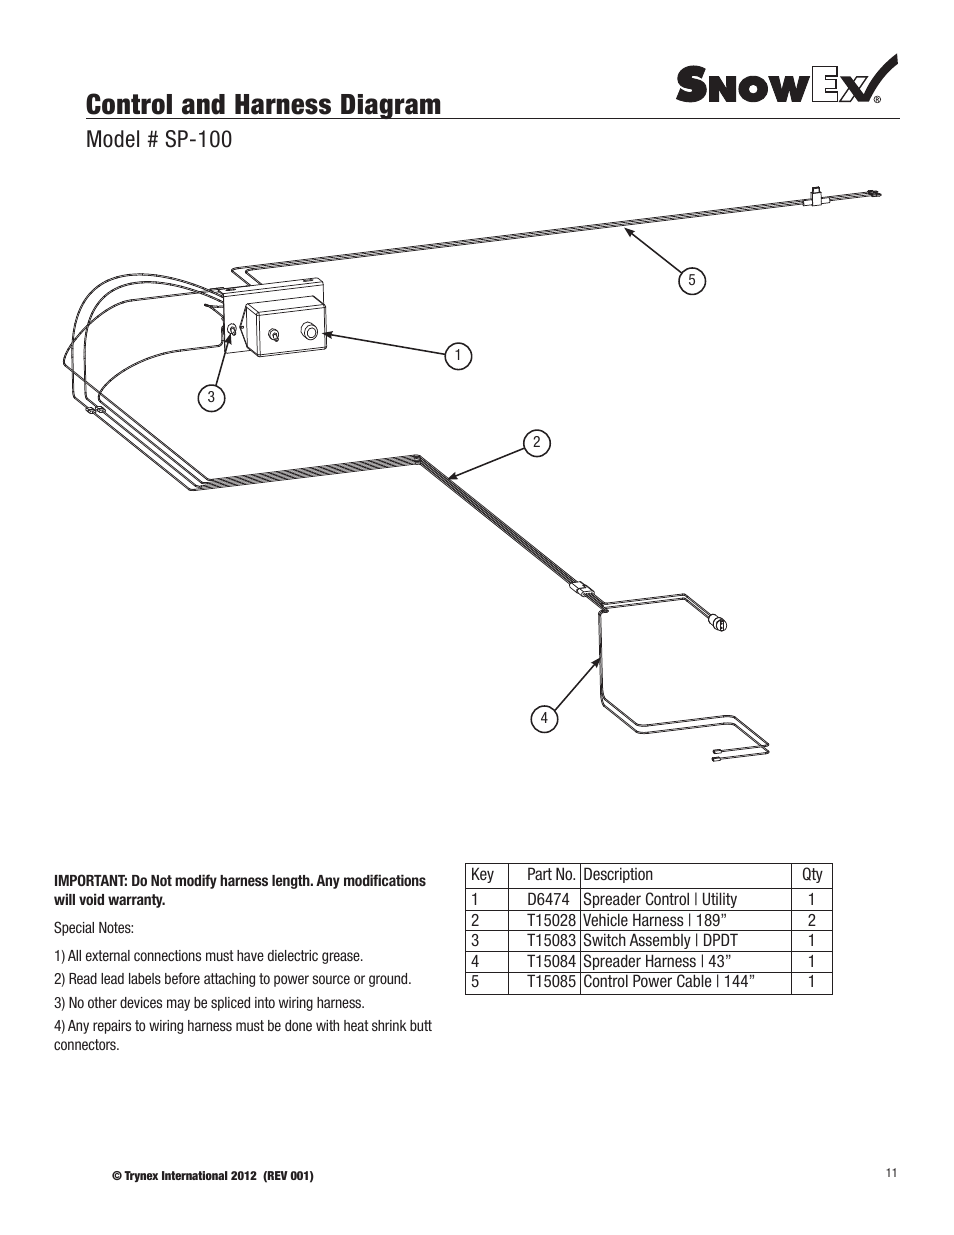 Snowex Wiring Harness Library Free Download Rg570 Diagram Control And Model Sp 100 User